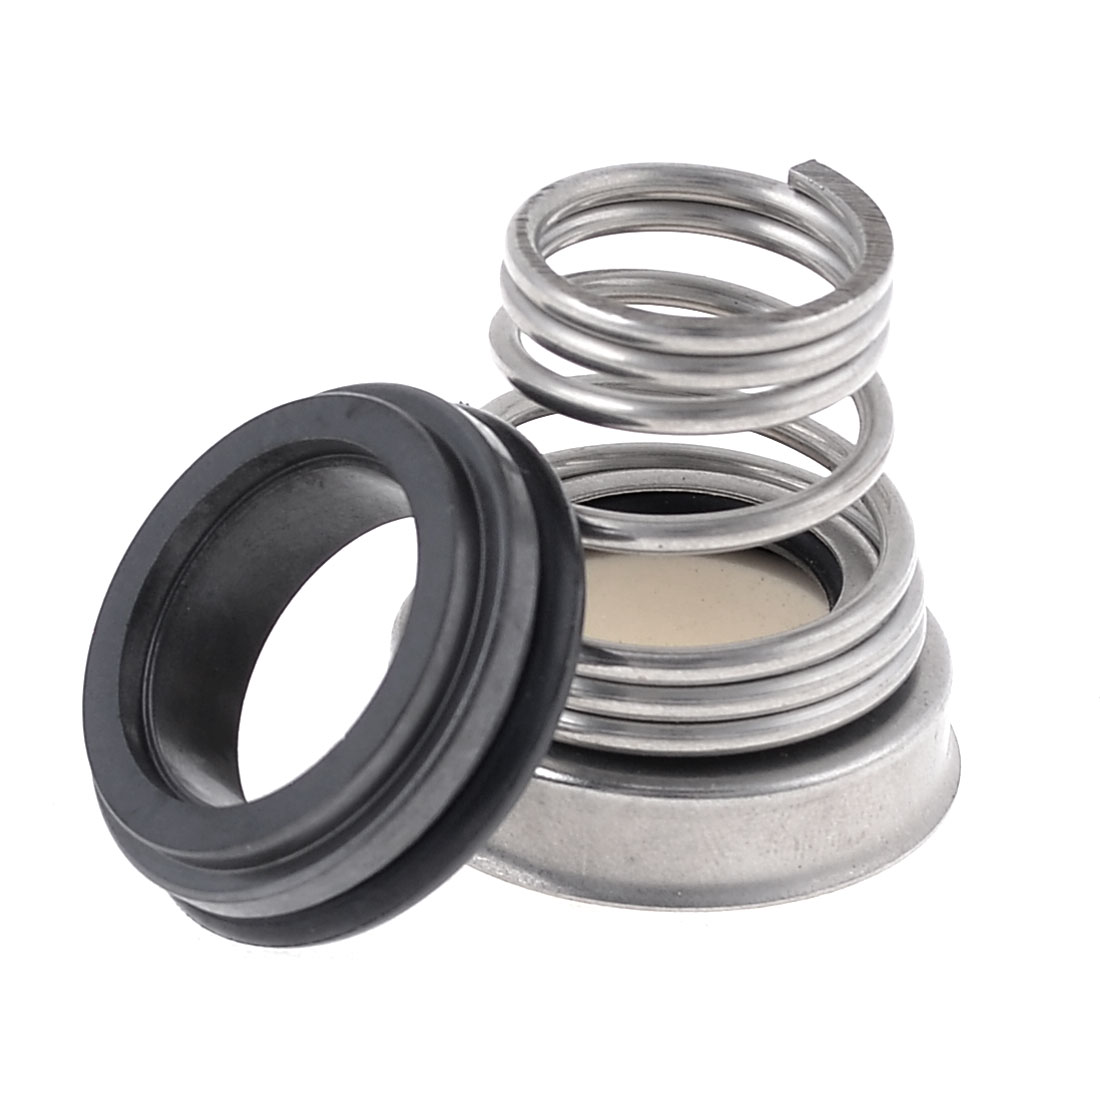 Water Pump Single Helical Spring Ceramic Base 16mm Dia Mechanical Seal